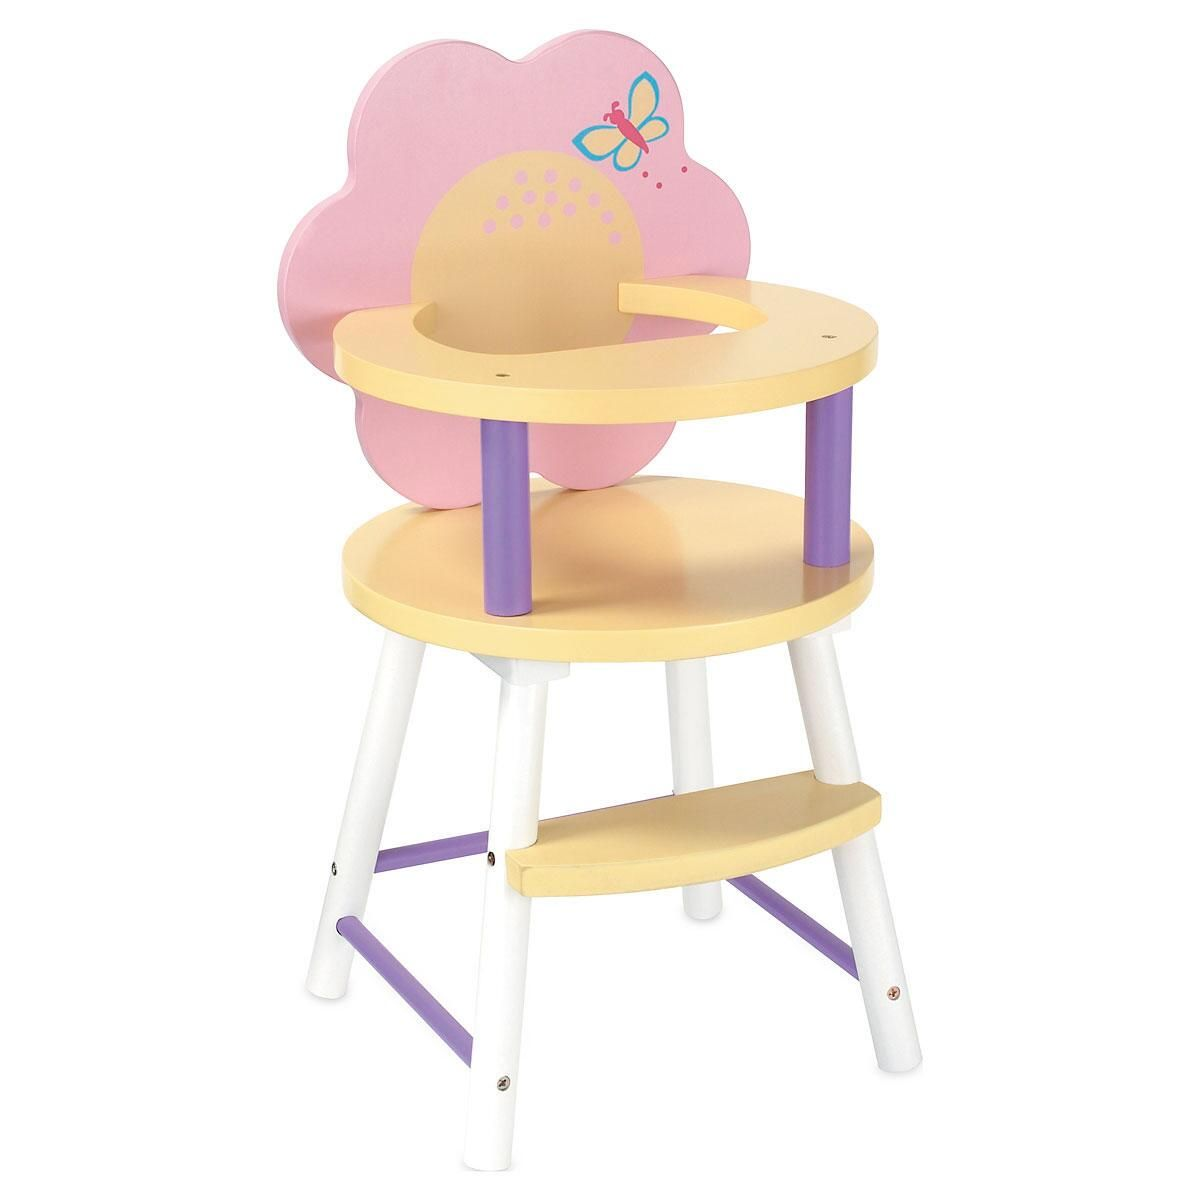 Wooden Baby High Chair Wooden Baby Doll High Chair Lillian Vernon